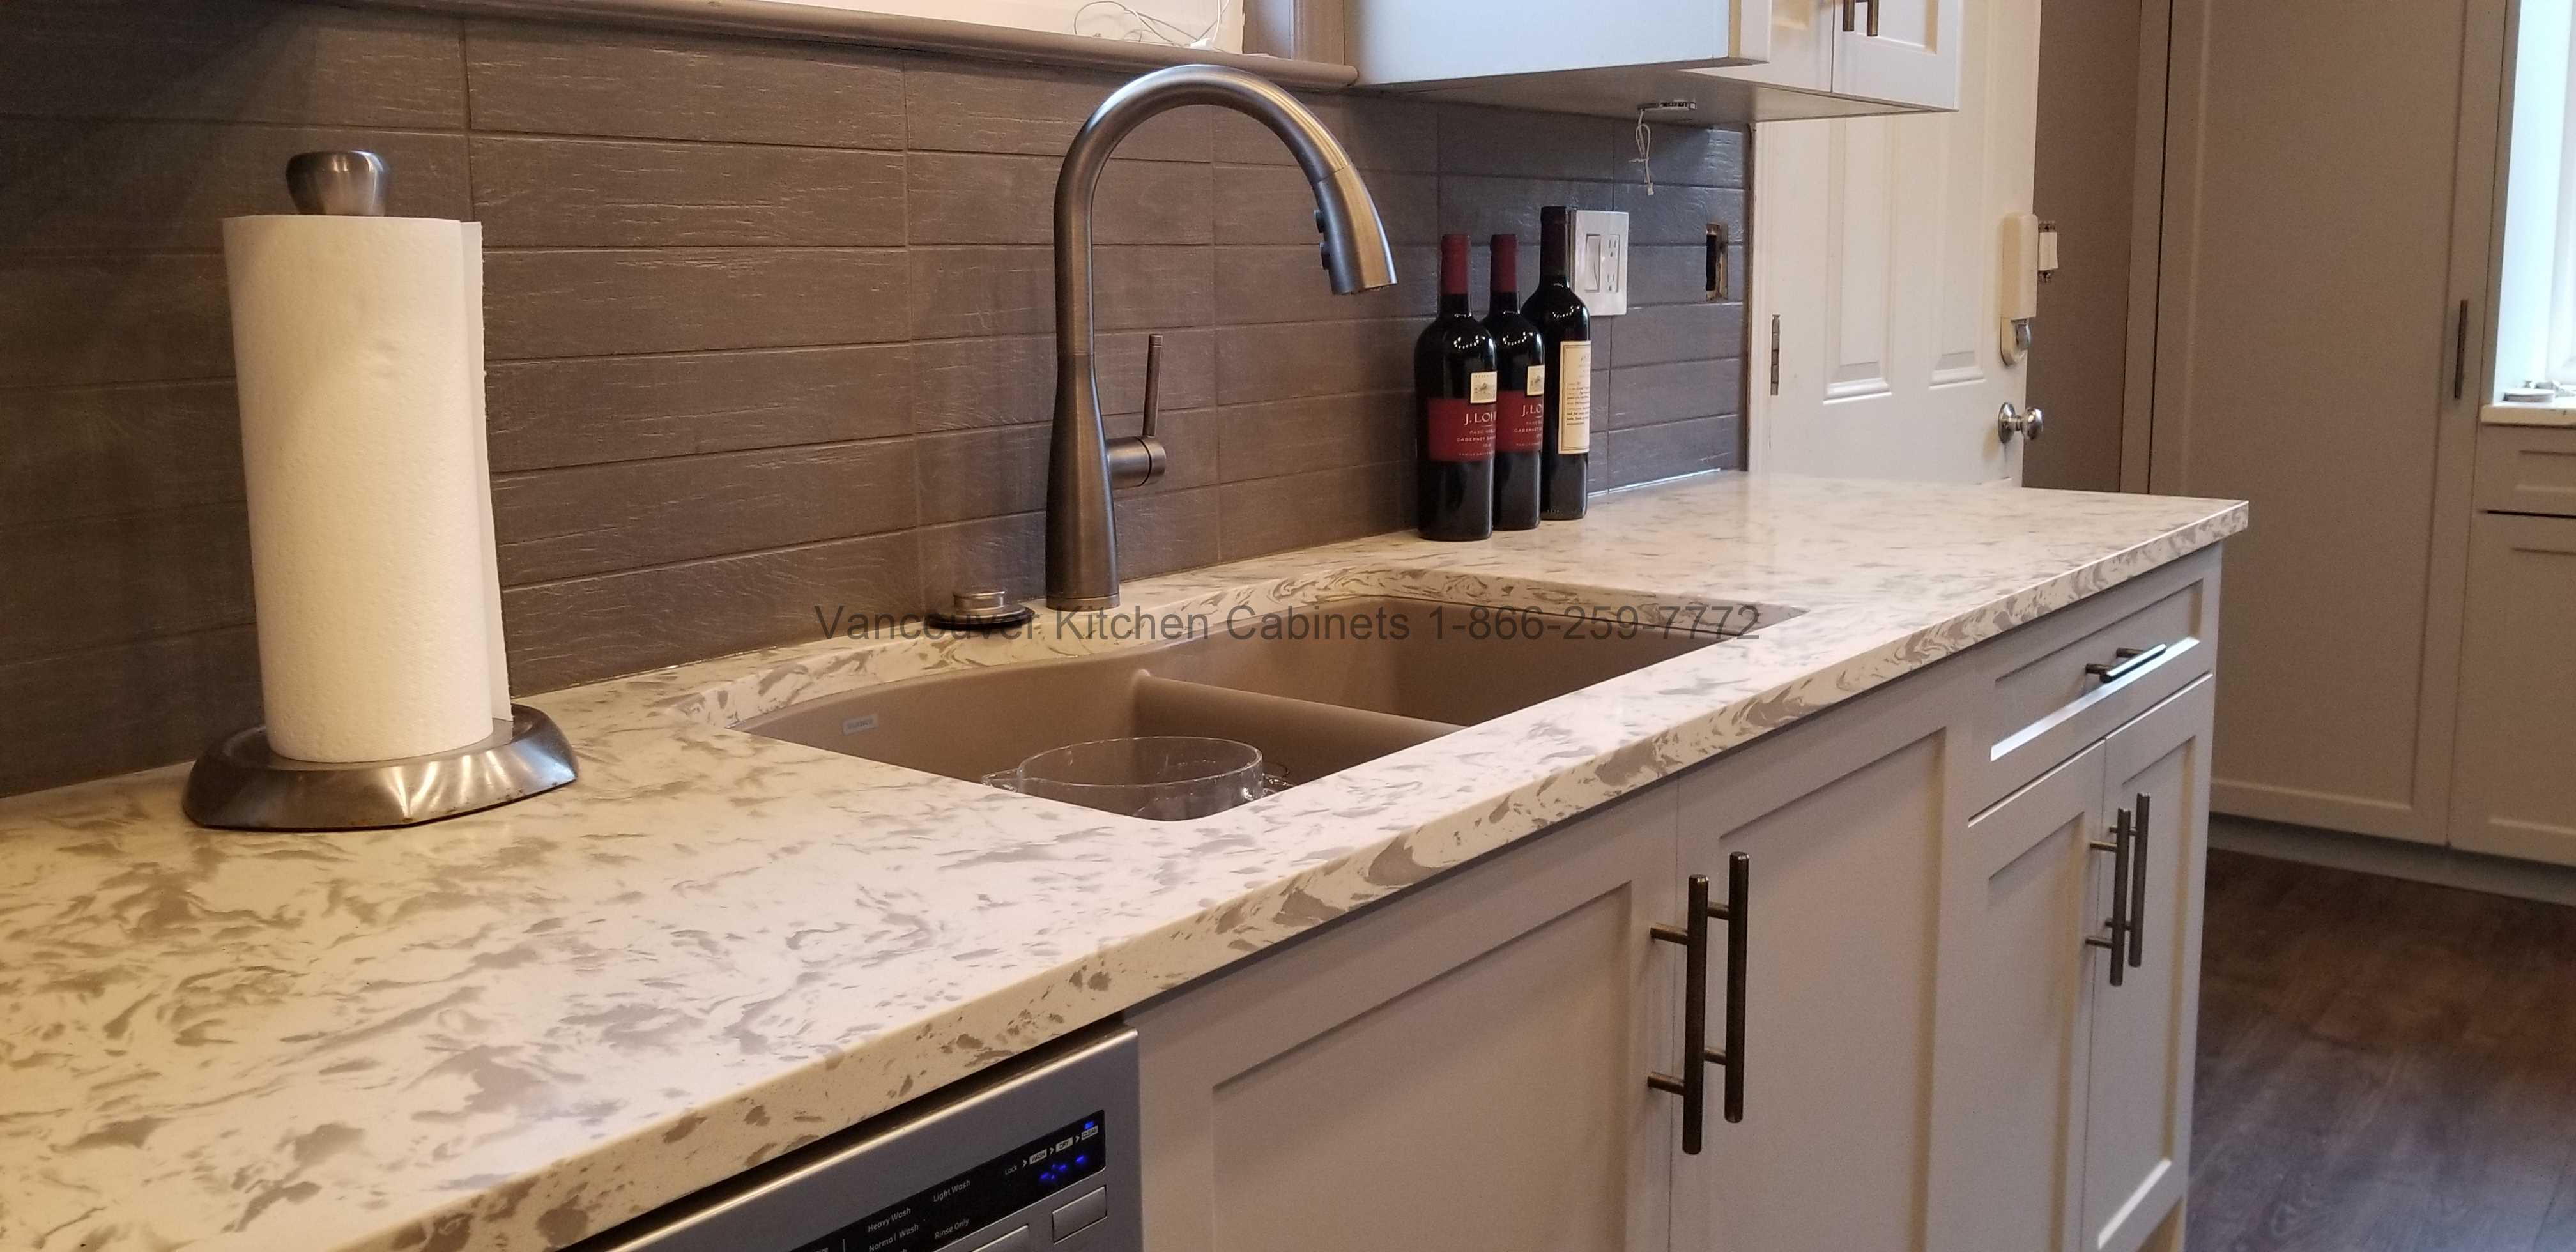 Vancouver Kitchen Cabinets 43